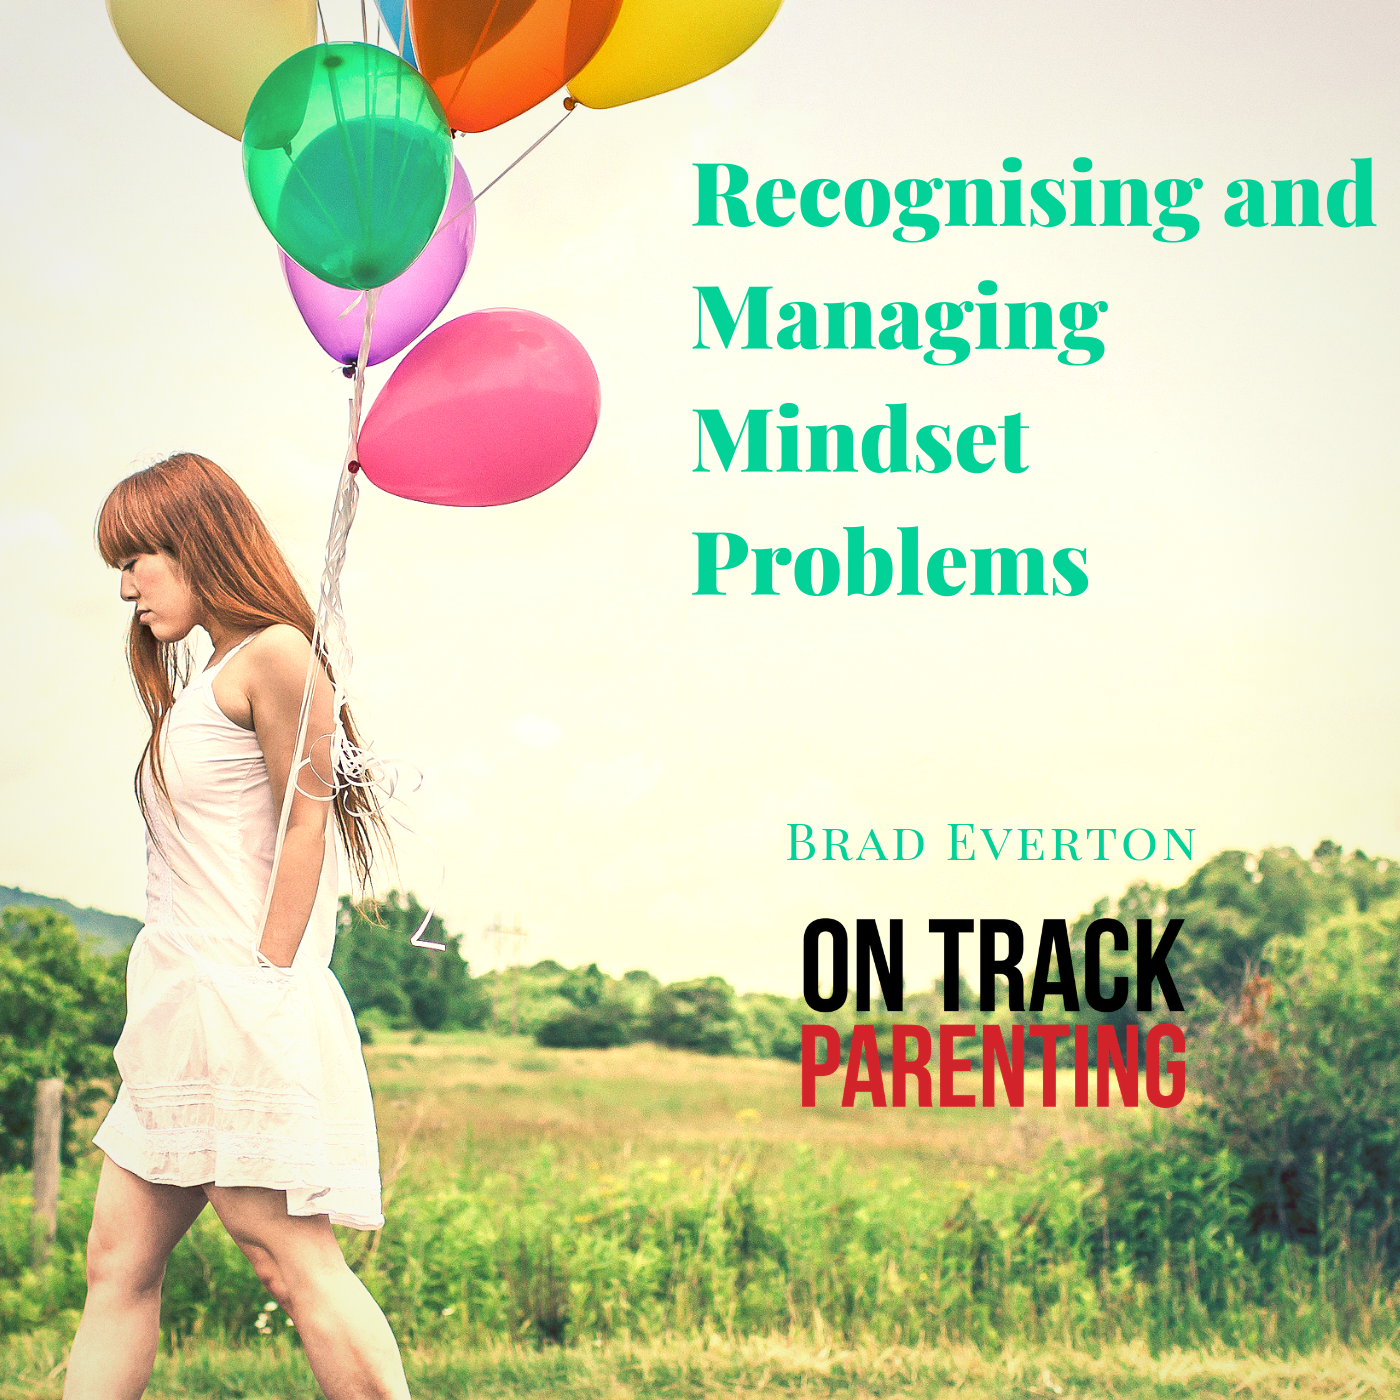 Recognising and Managing Mindset Problems